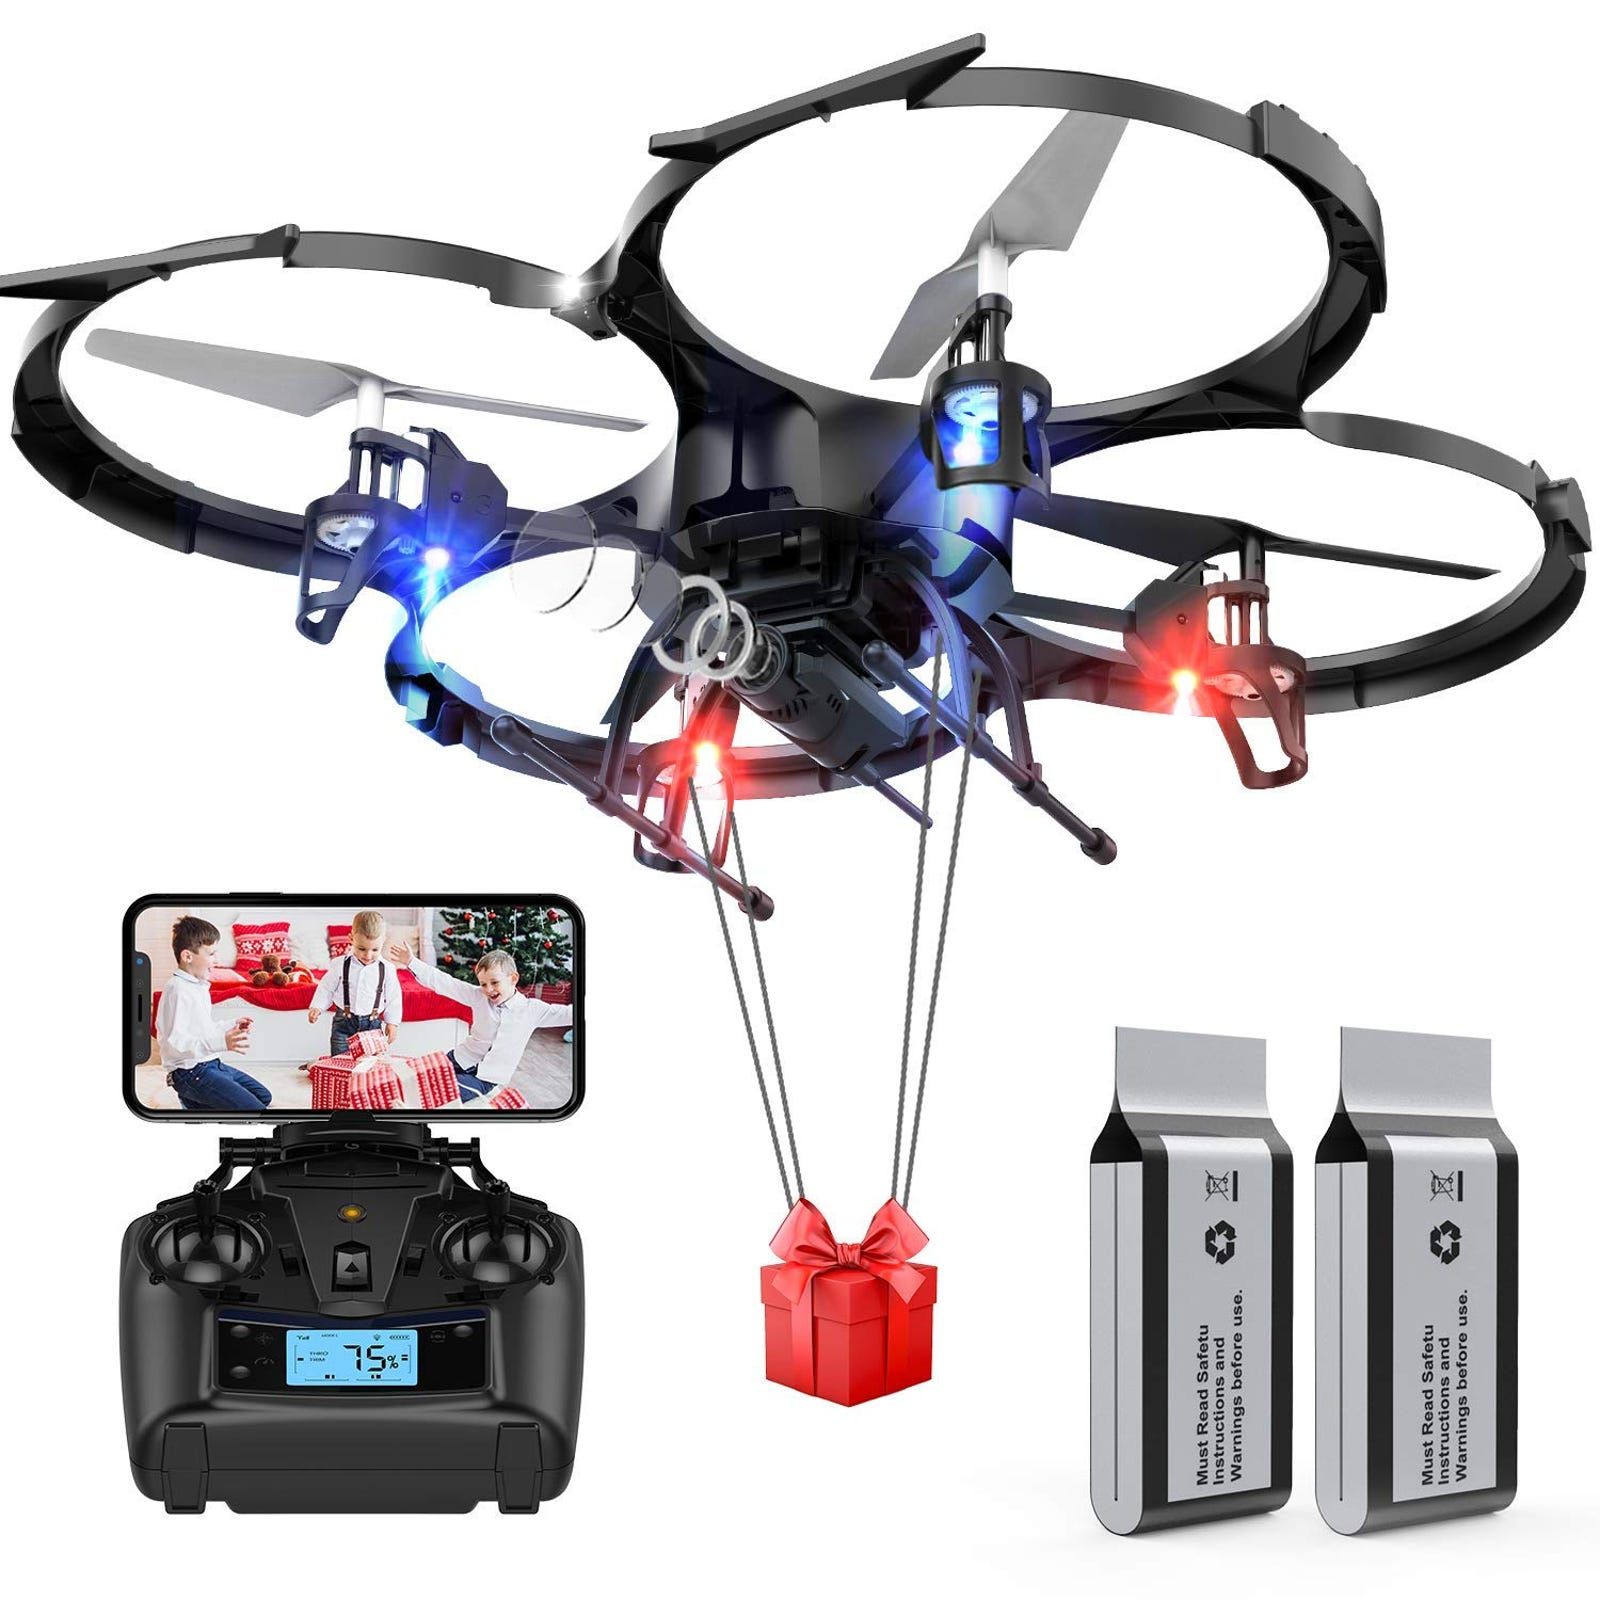 45% on Drones with Camera-DBPOWER U818A Discovery FPV 720P HD WiFi Camerawith Coupon Code: CSB9DON7